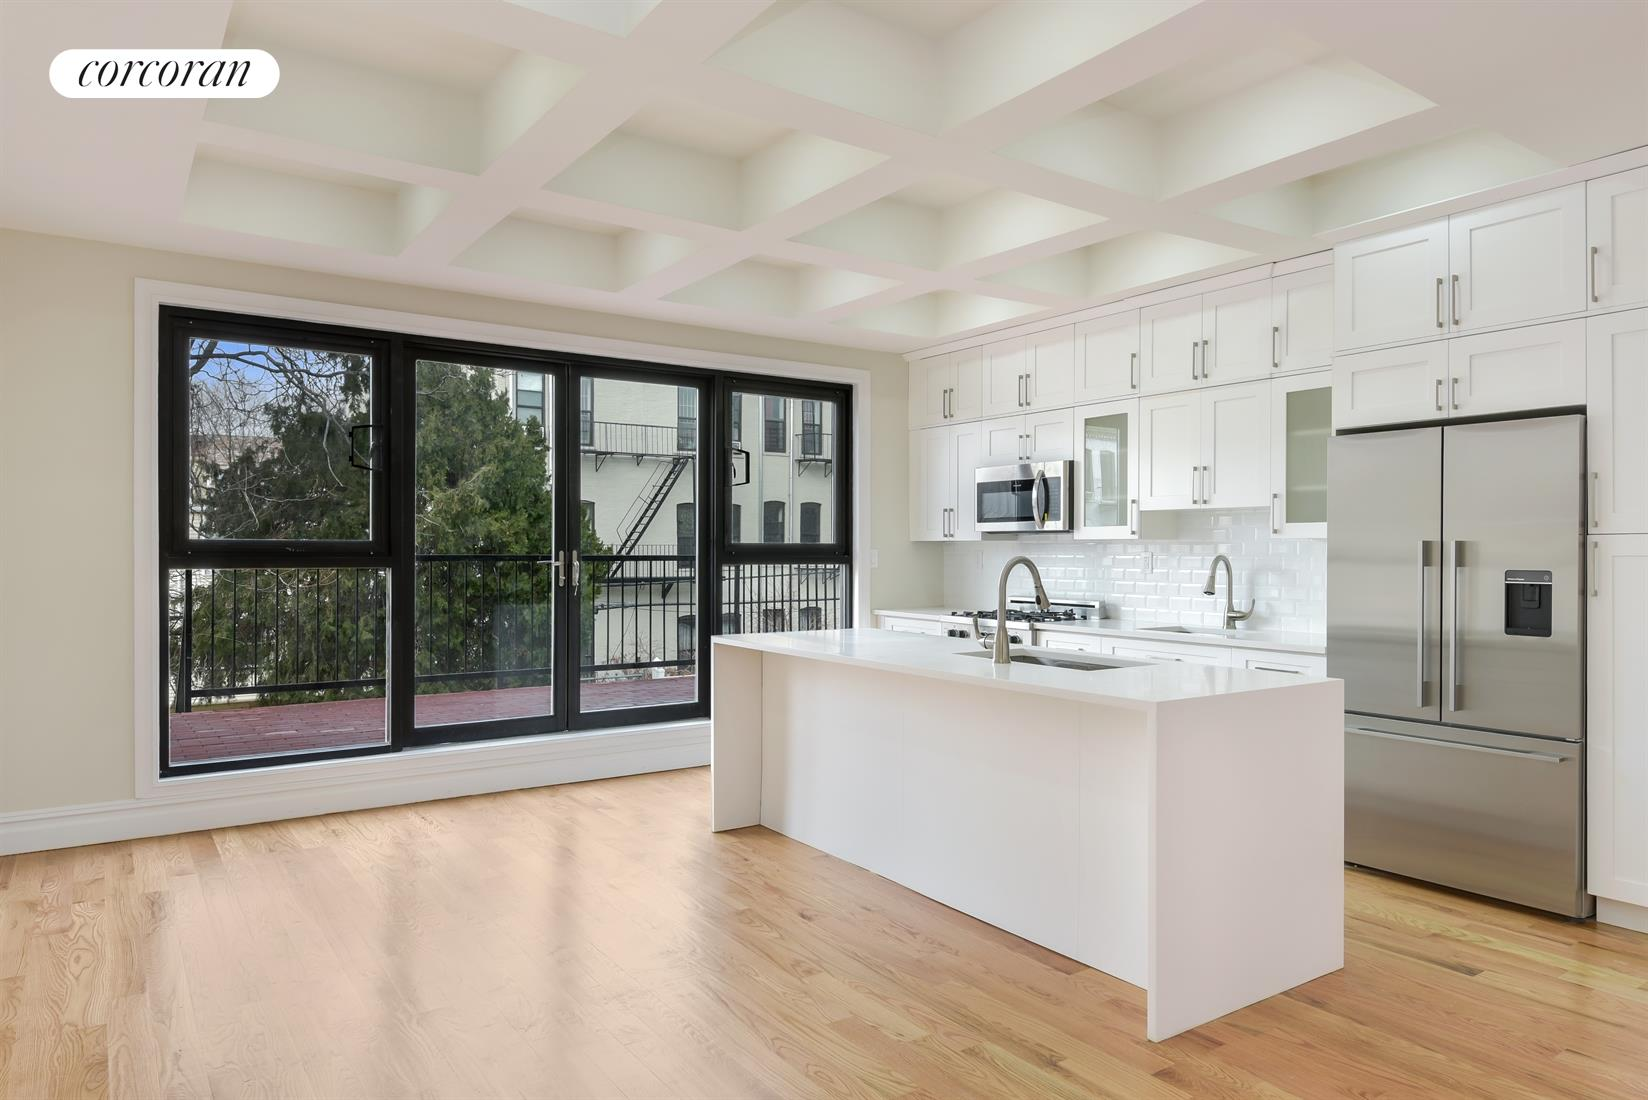 Multi-Family Home for Sale at 197 Moffat Street 197 Moffat Street Brooklyn, New York 11207 United States